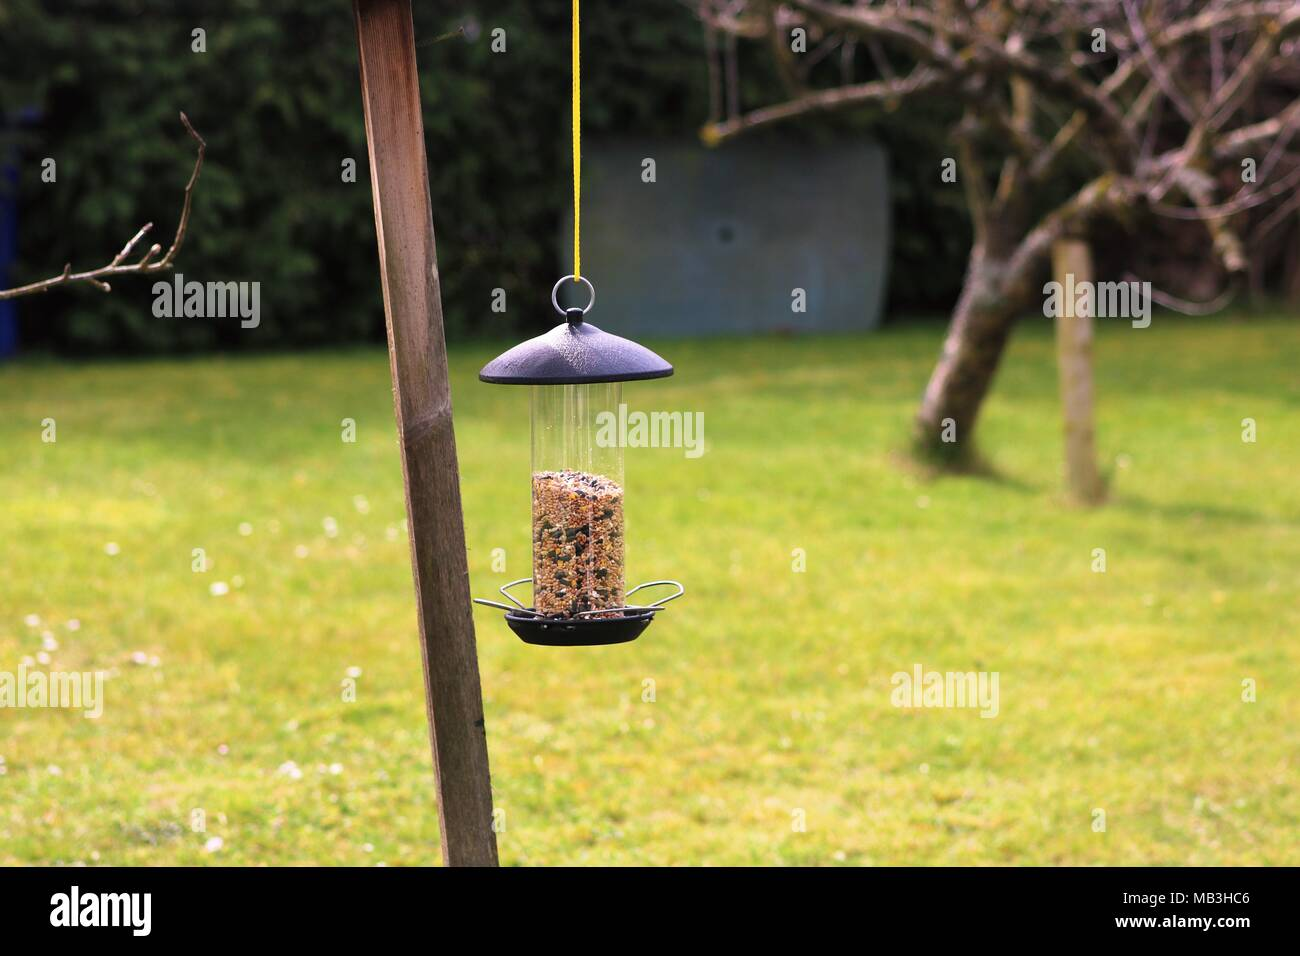 Hanging bird feeder with seed in garden with blurred background - Stock Image